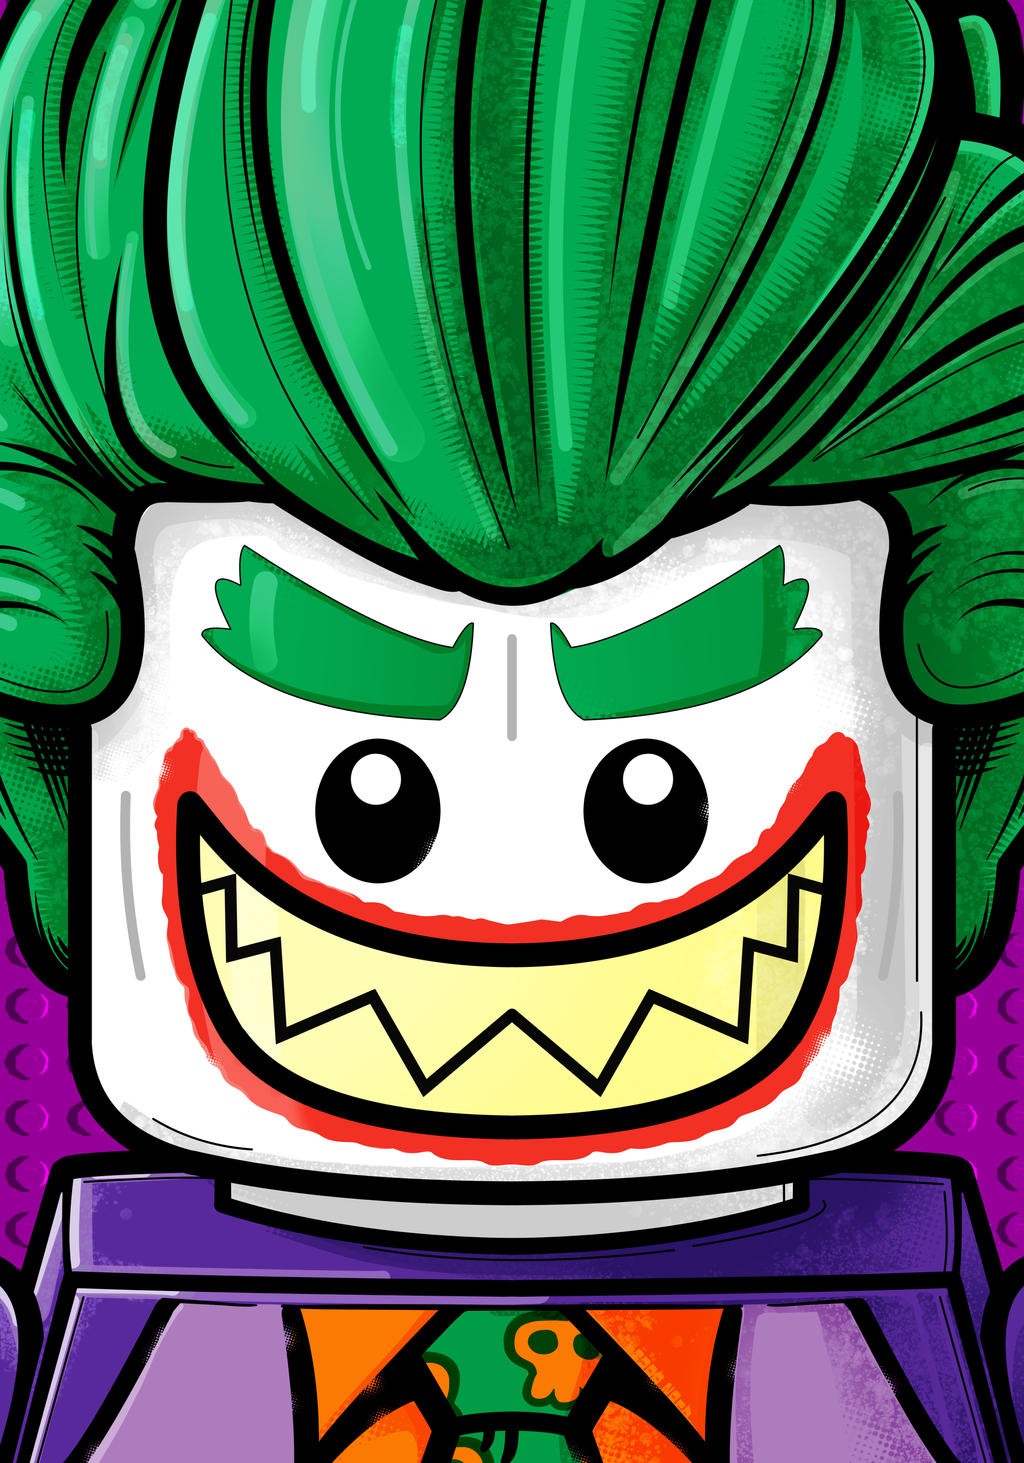 Lego Joker by Thuddleston